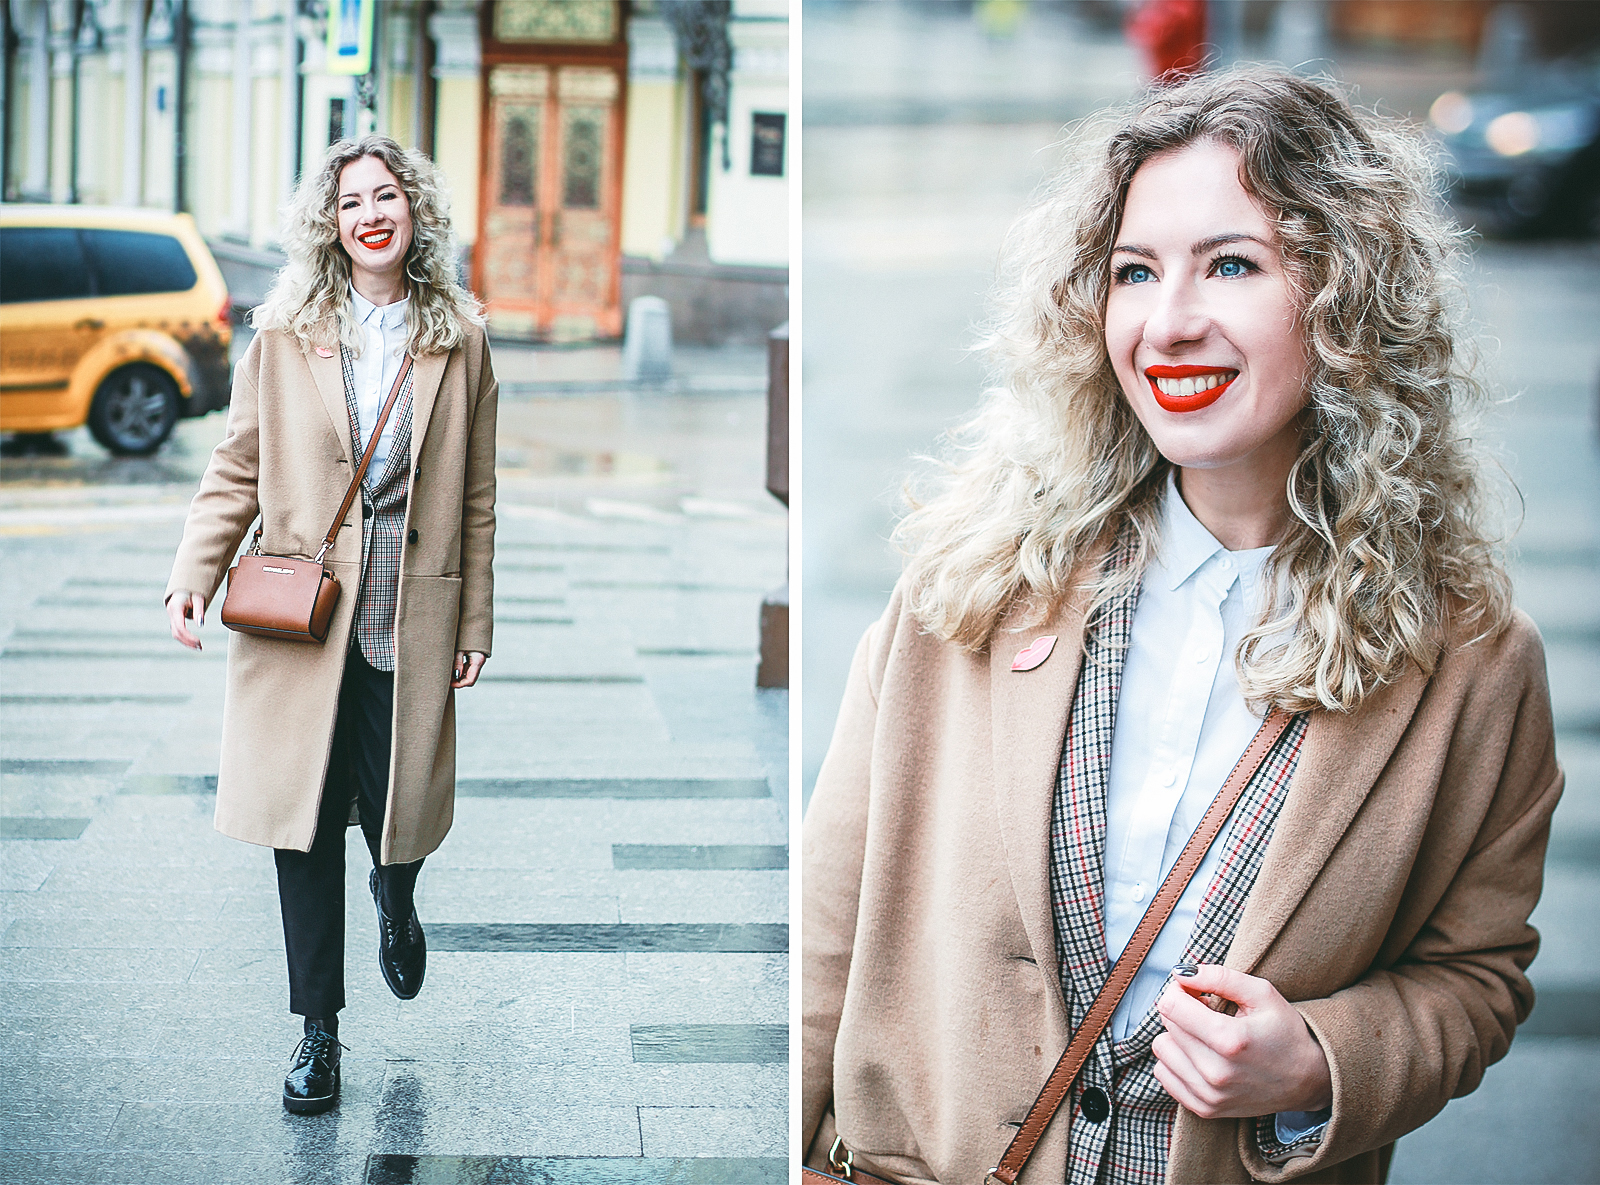 Margarita_Maslova__Ritalifestyle_Fashion_blogger_Moscow_business_casual_spring_looks_work_black_pants